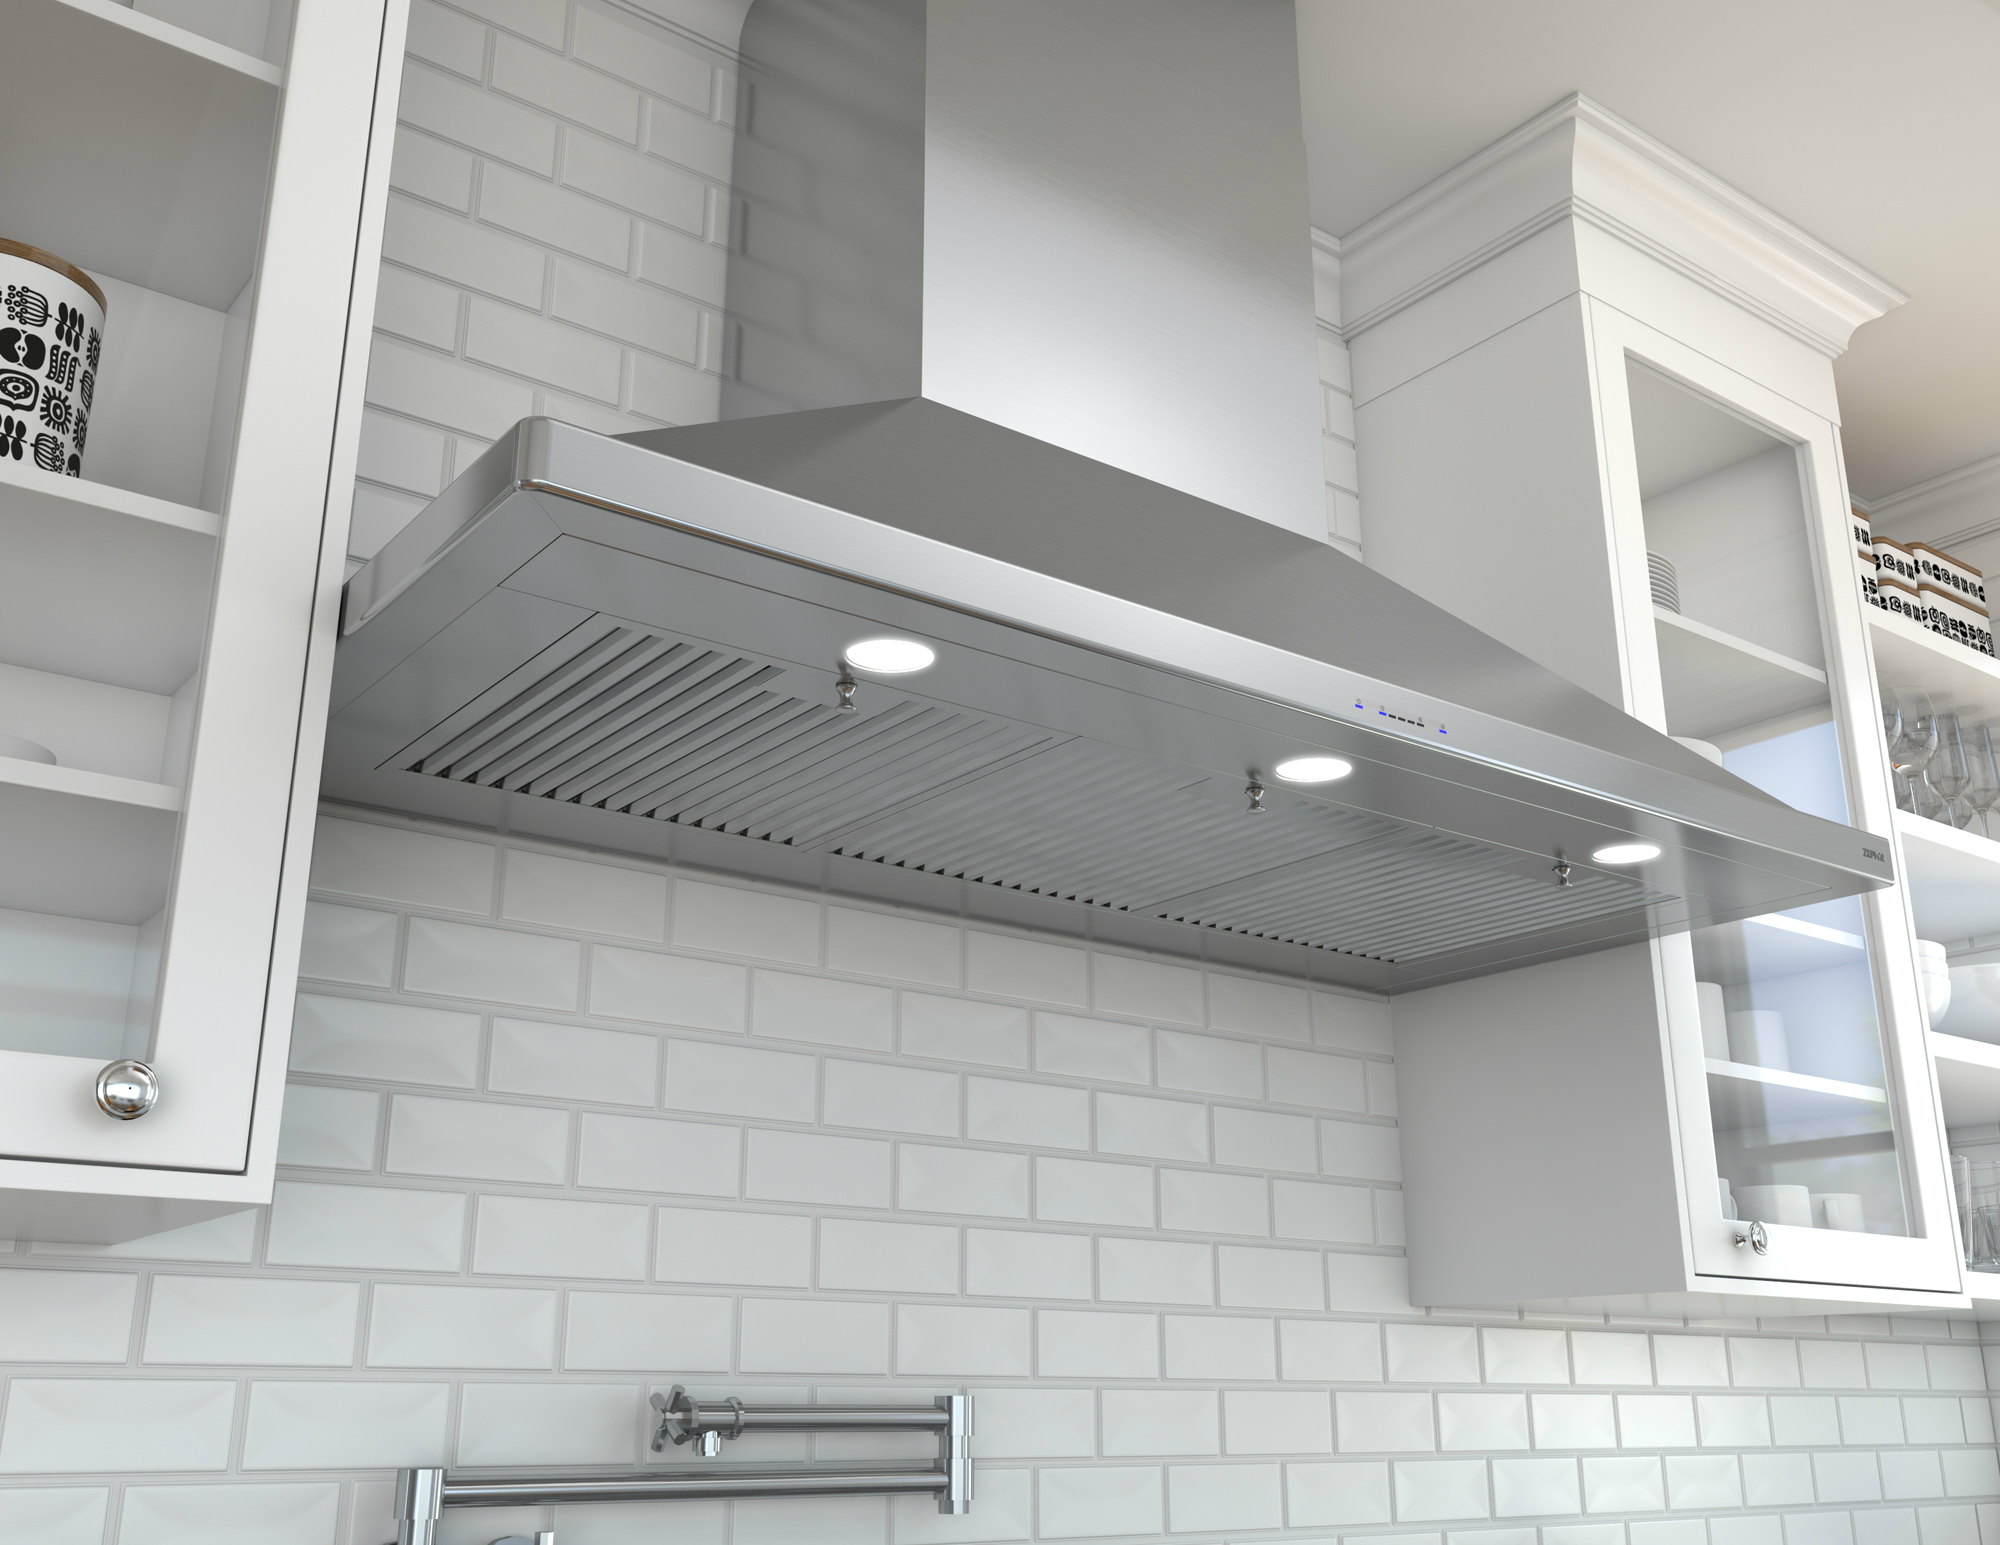 zephyr unveils siena pro chimney hood the power needed for the